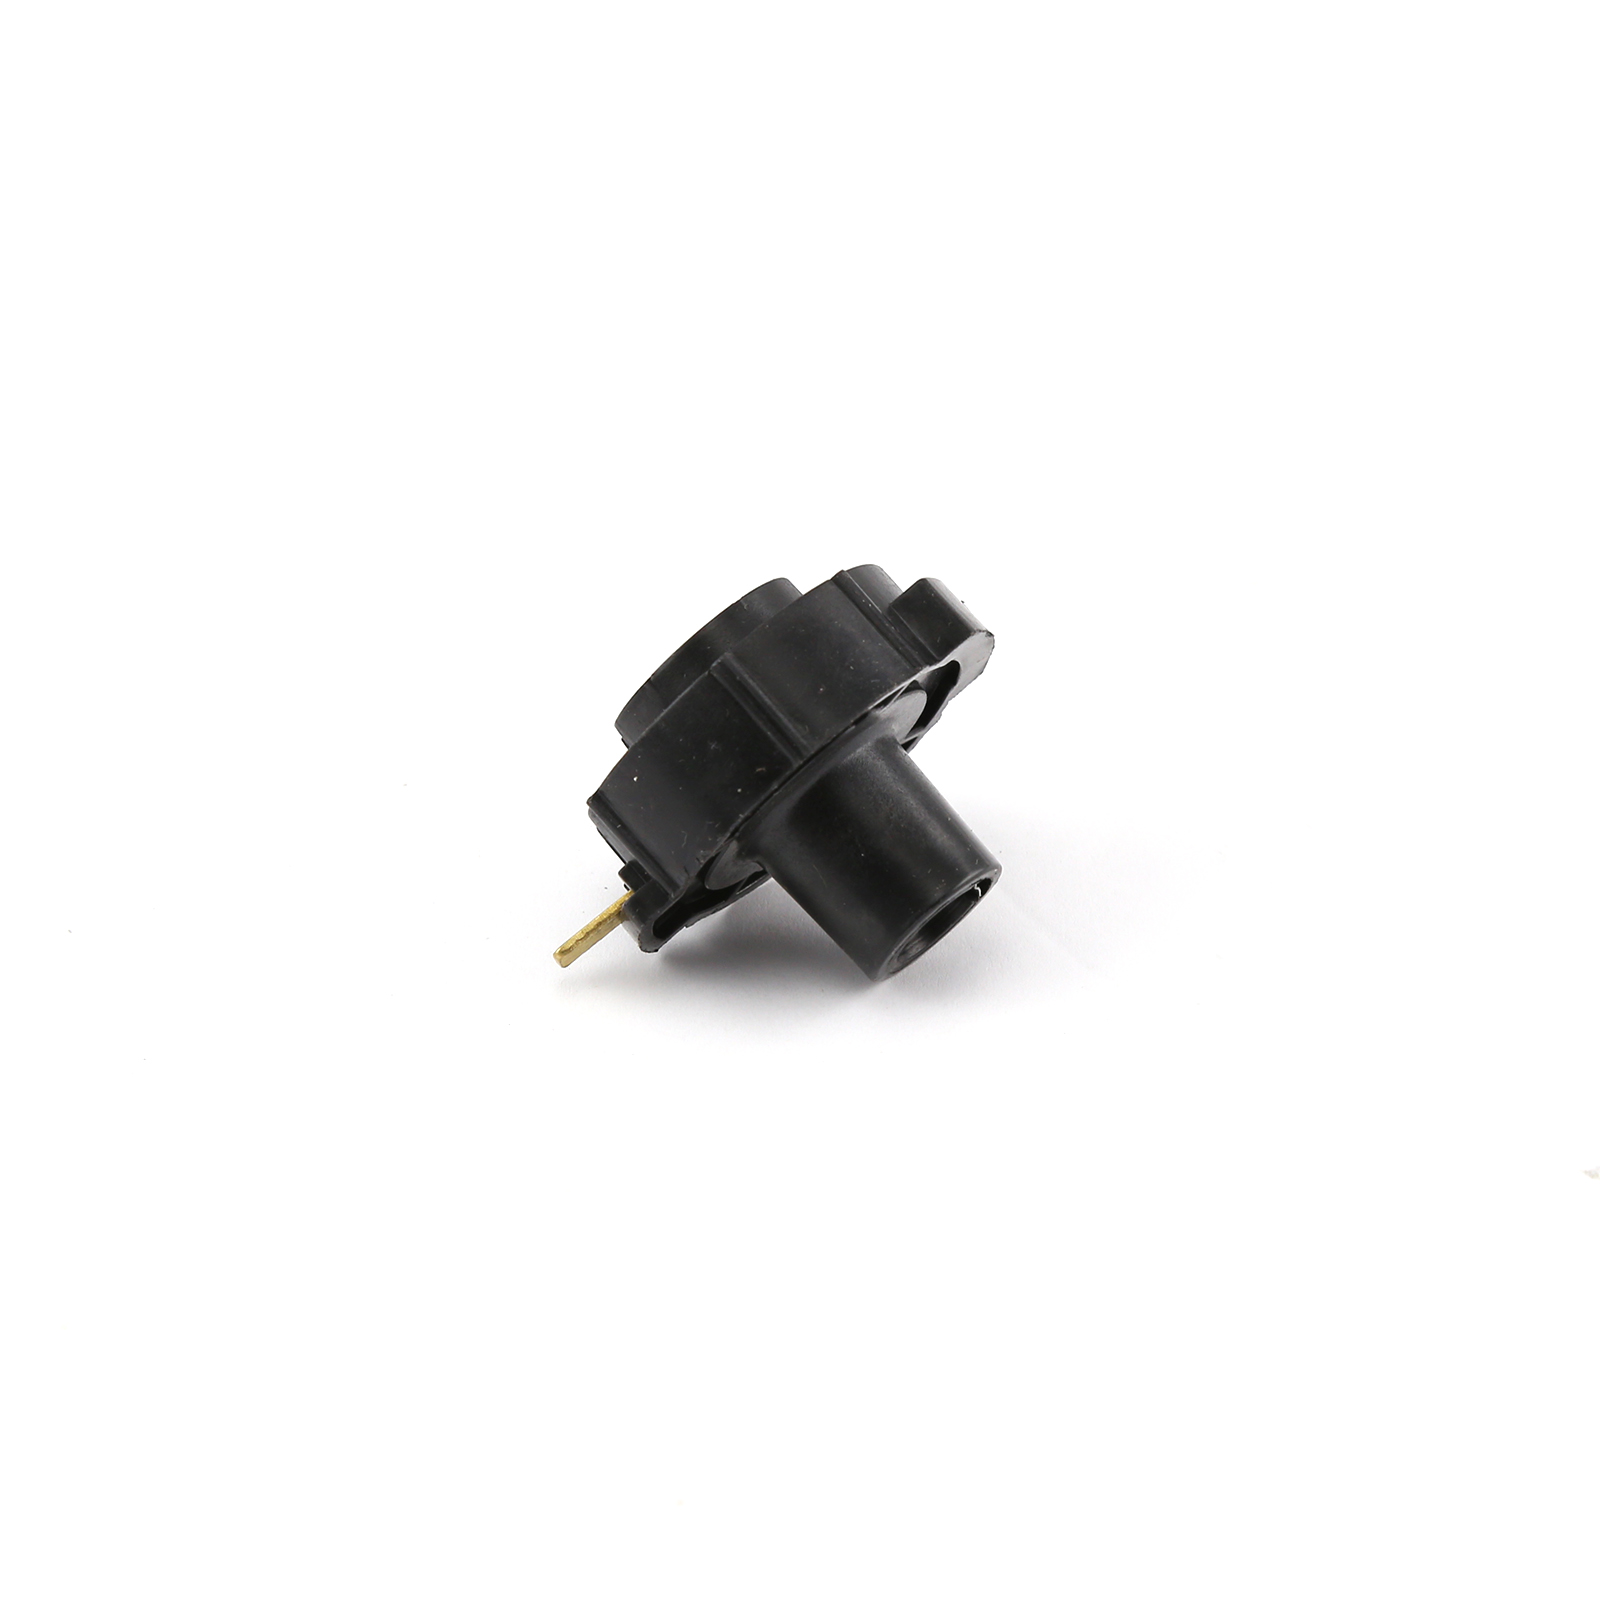 Pc10001-8 Series Distributor Rotor Button Only